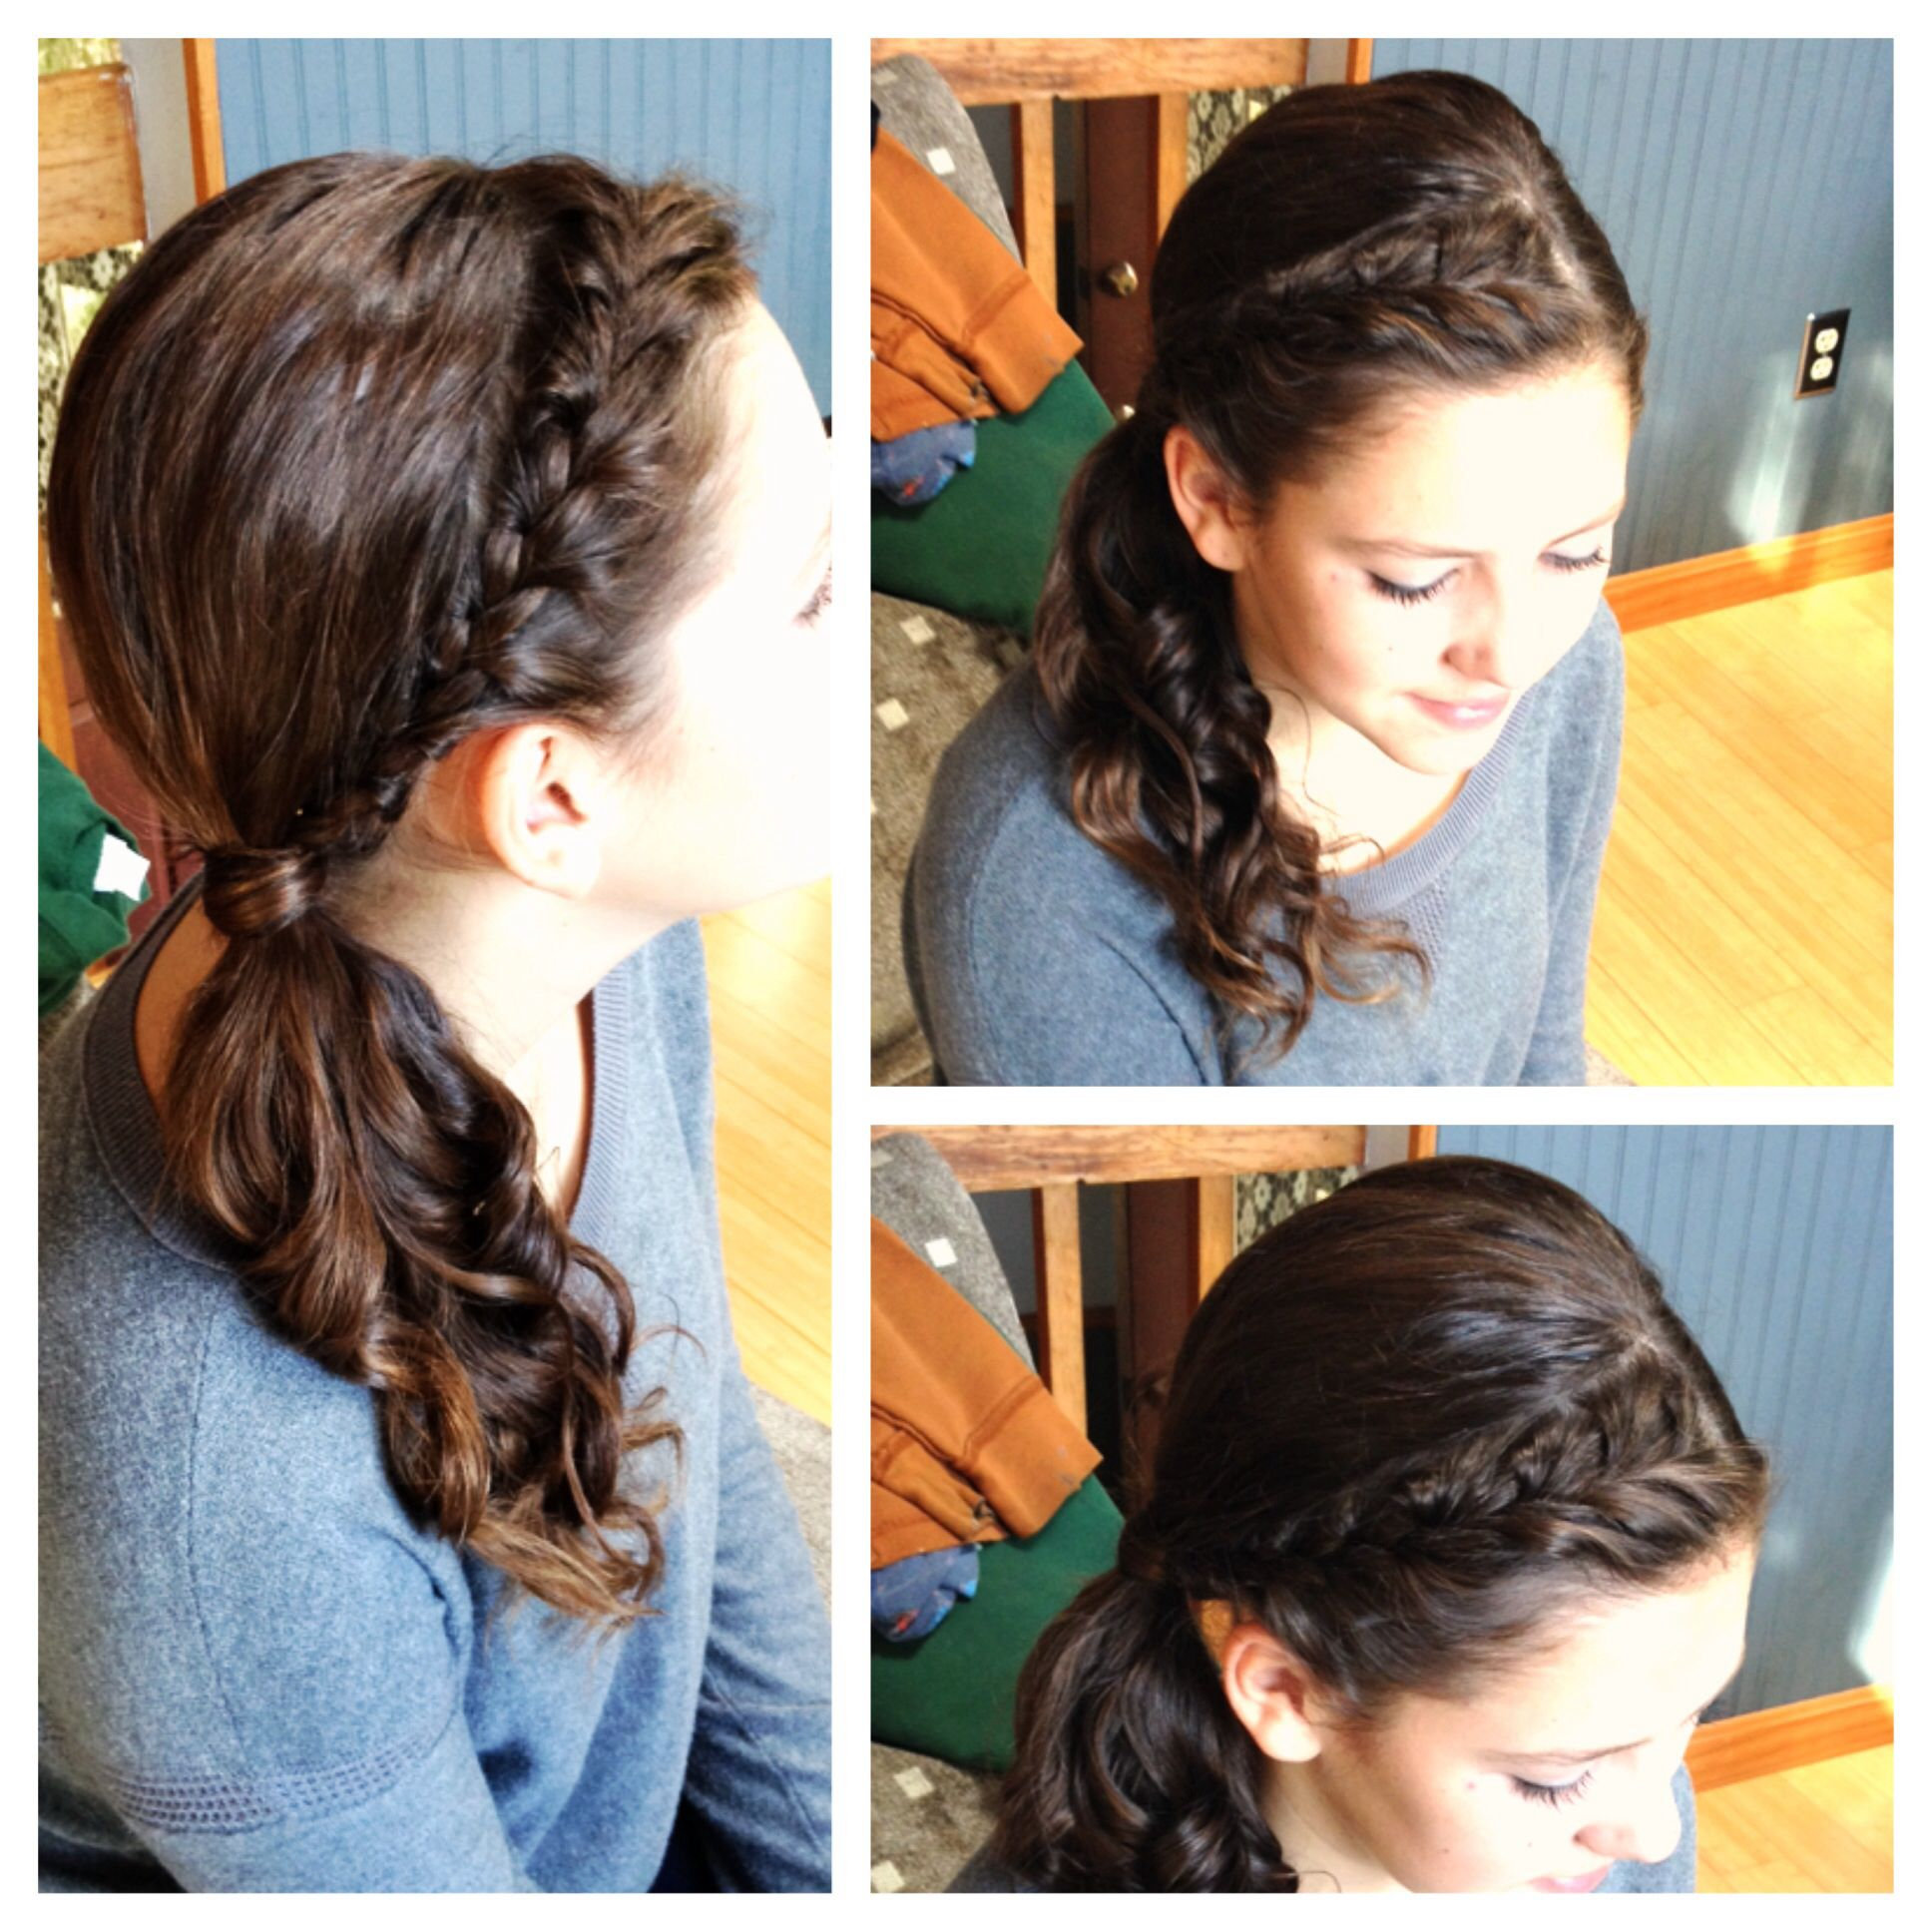 Headband french braid into a side ponytail with curls bridesmaid